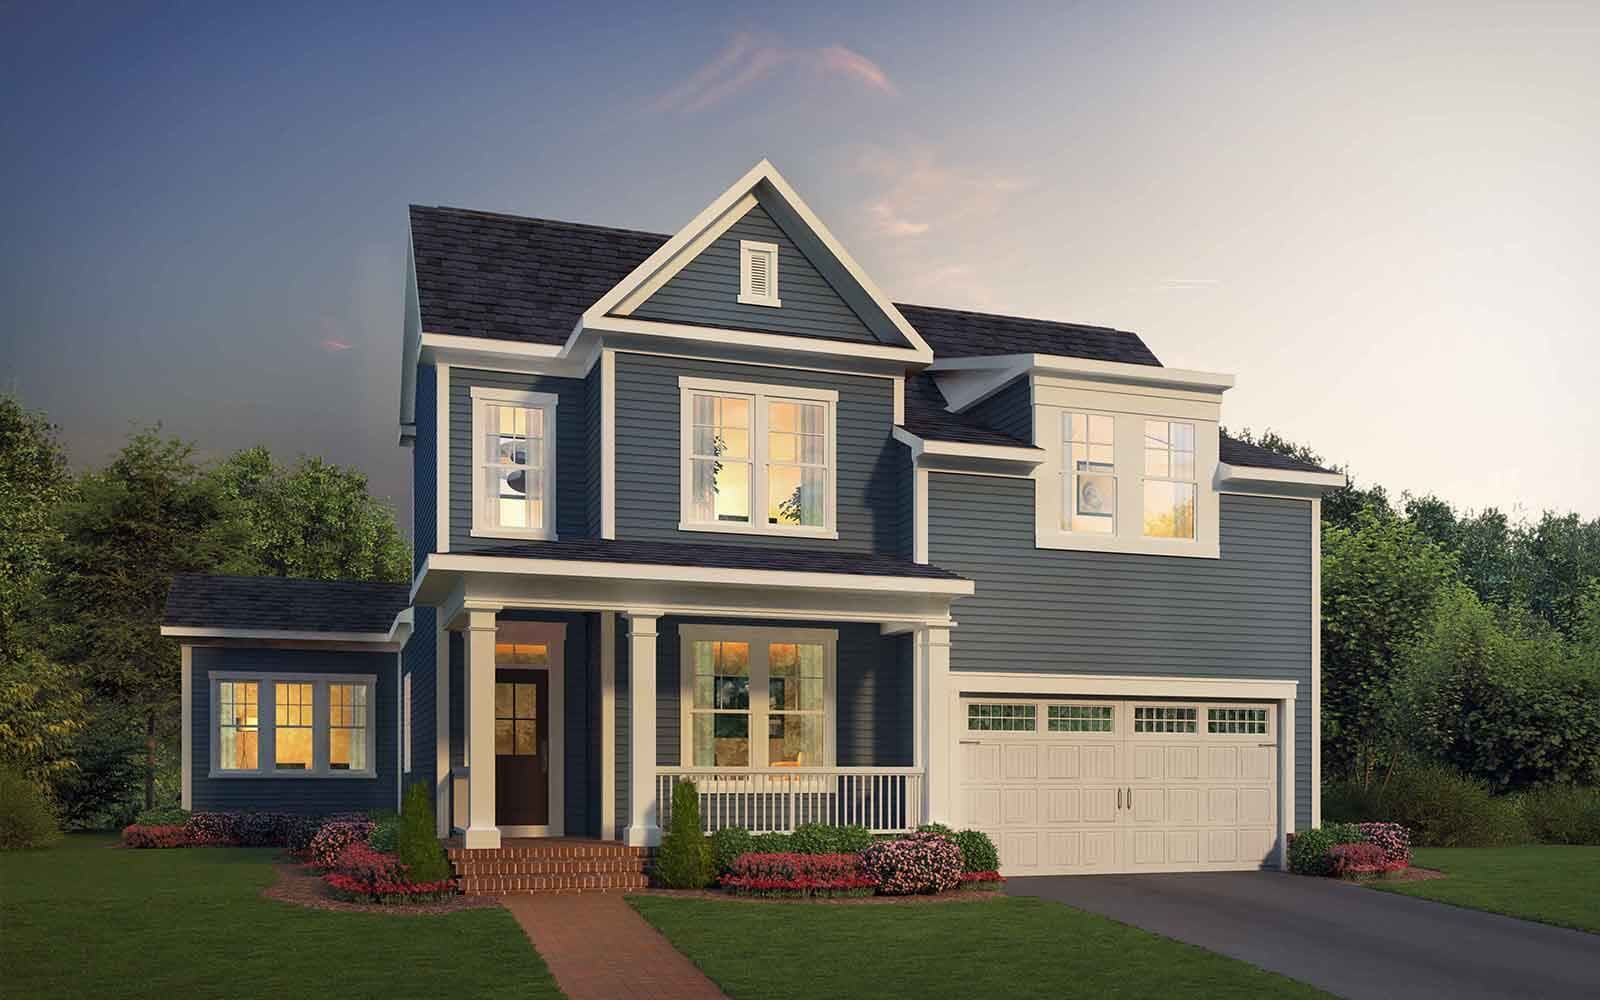 Exterior:Elevation 1 of the Torrington II a home design by Brookfield Residential at The Bluffs at Sleeter Lake